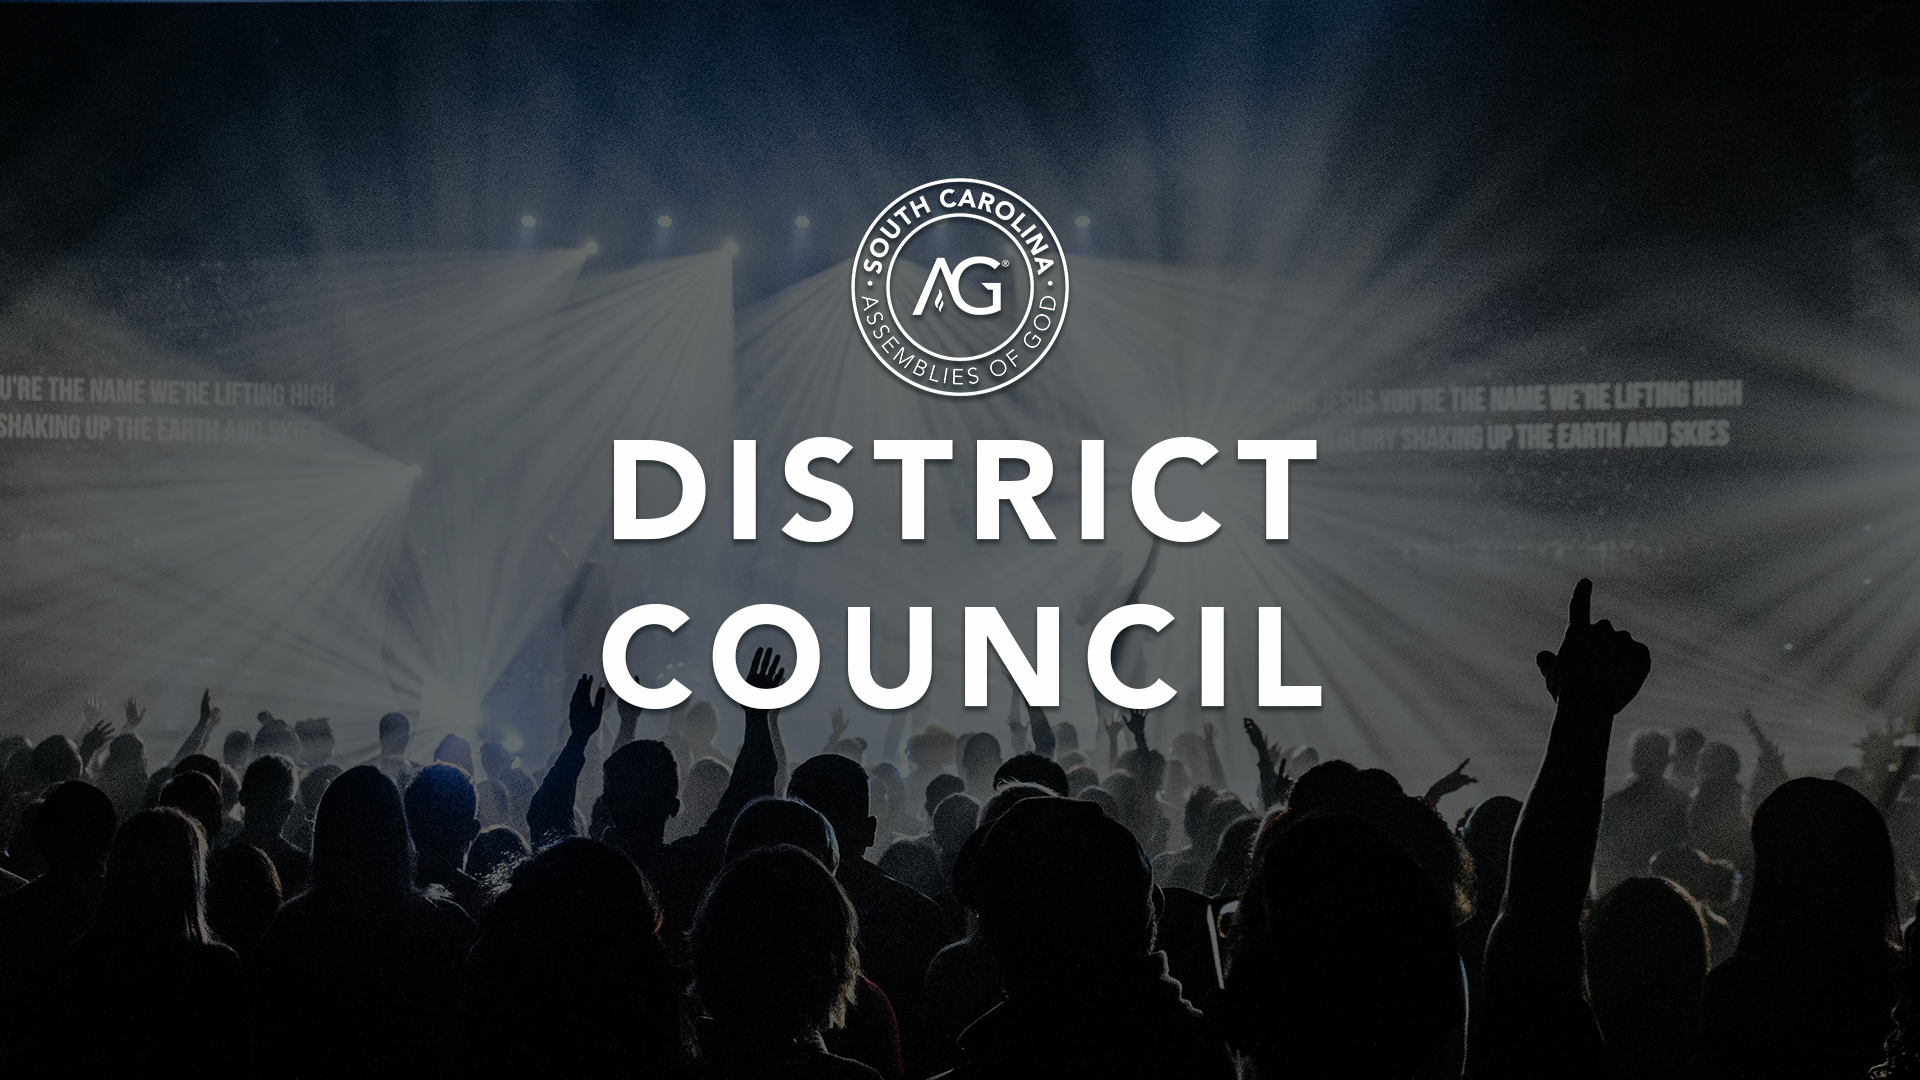 South Carolina District Council, SC District Council, District Council AG, District Council Conference, South Carolina Conference, Church Conference, Minister Conference